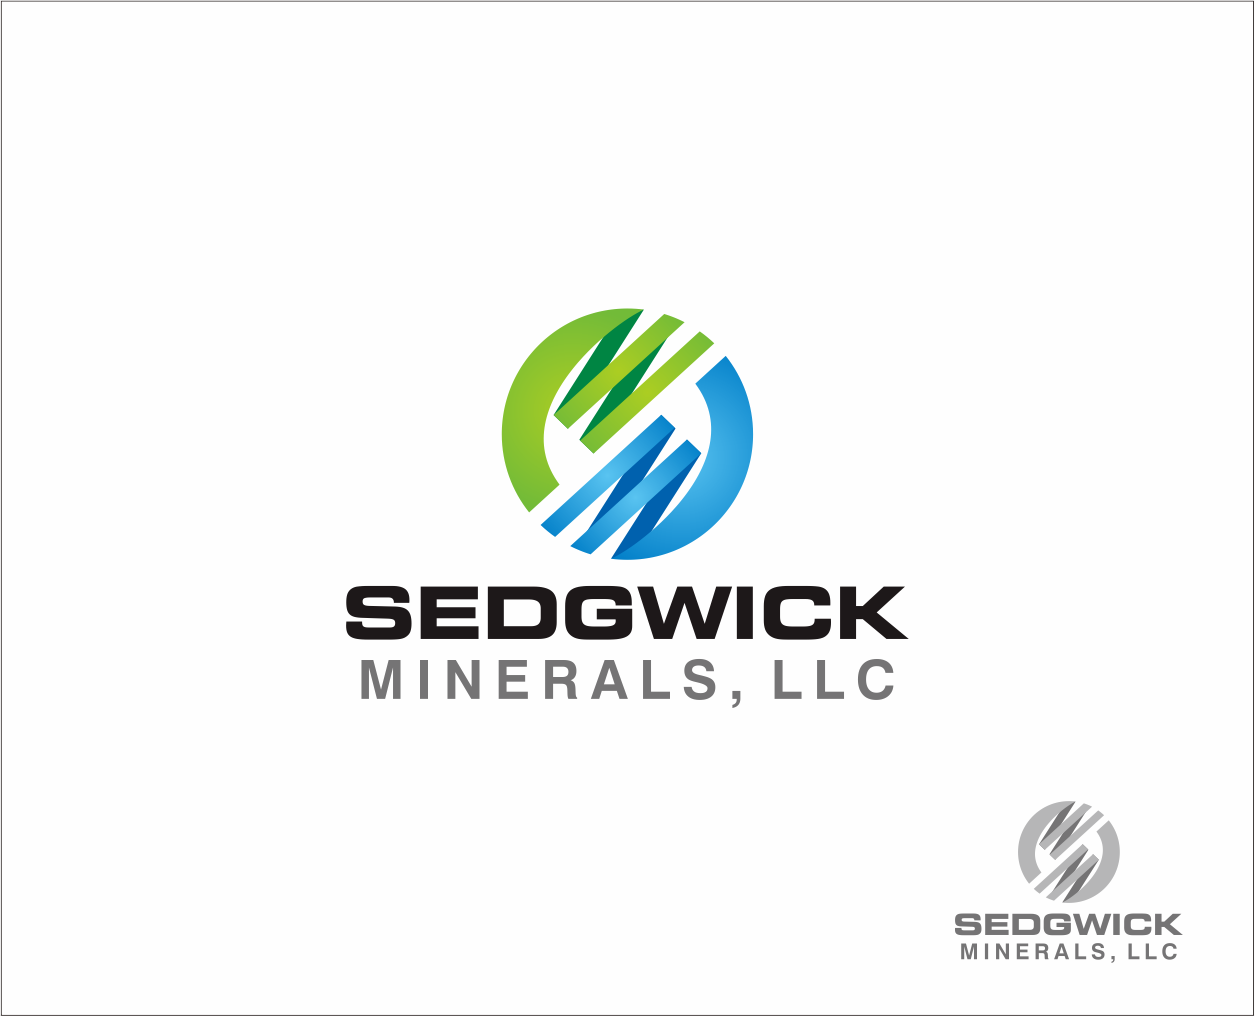 Logo Design by Armada Jamaluddin - Entry No. 52 in the Logo Design Contest Inspiring Logo Design for Sedgwick Minerals, LLC.